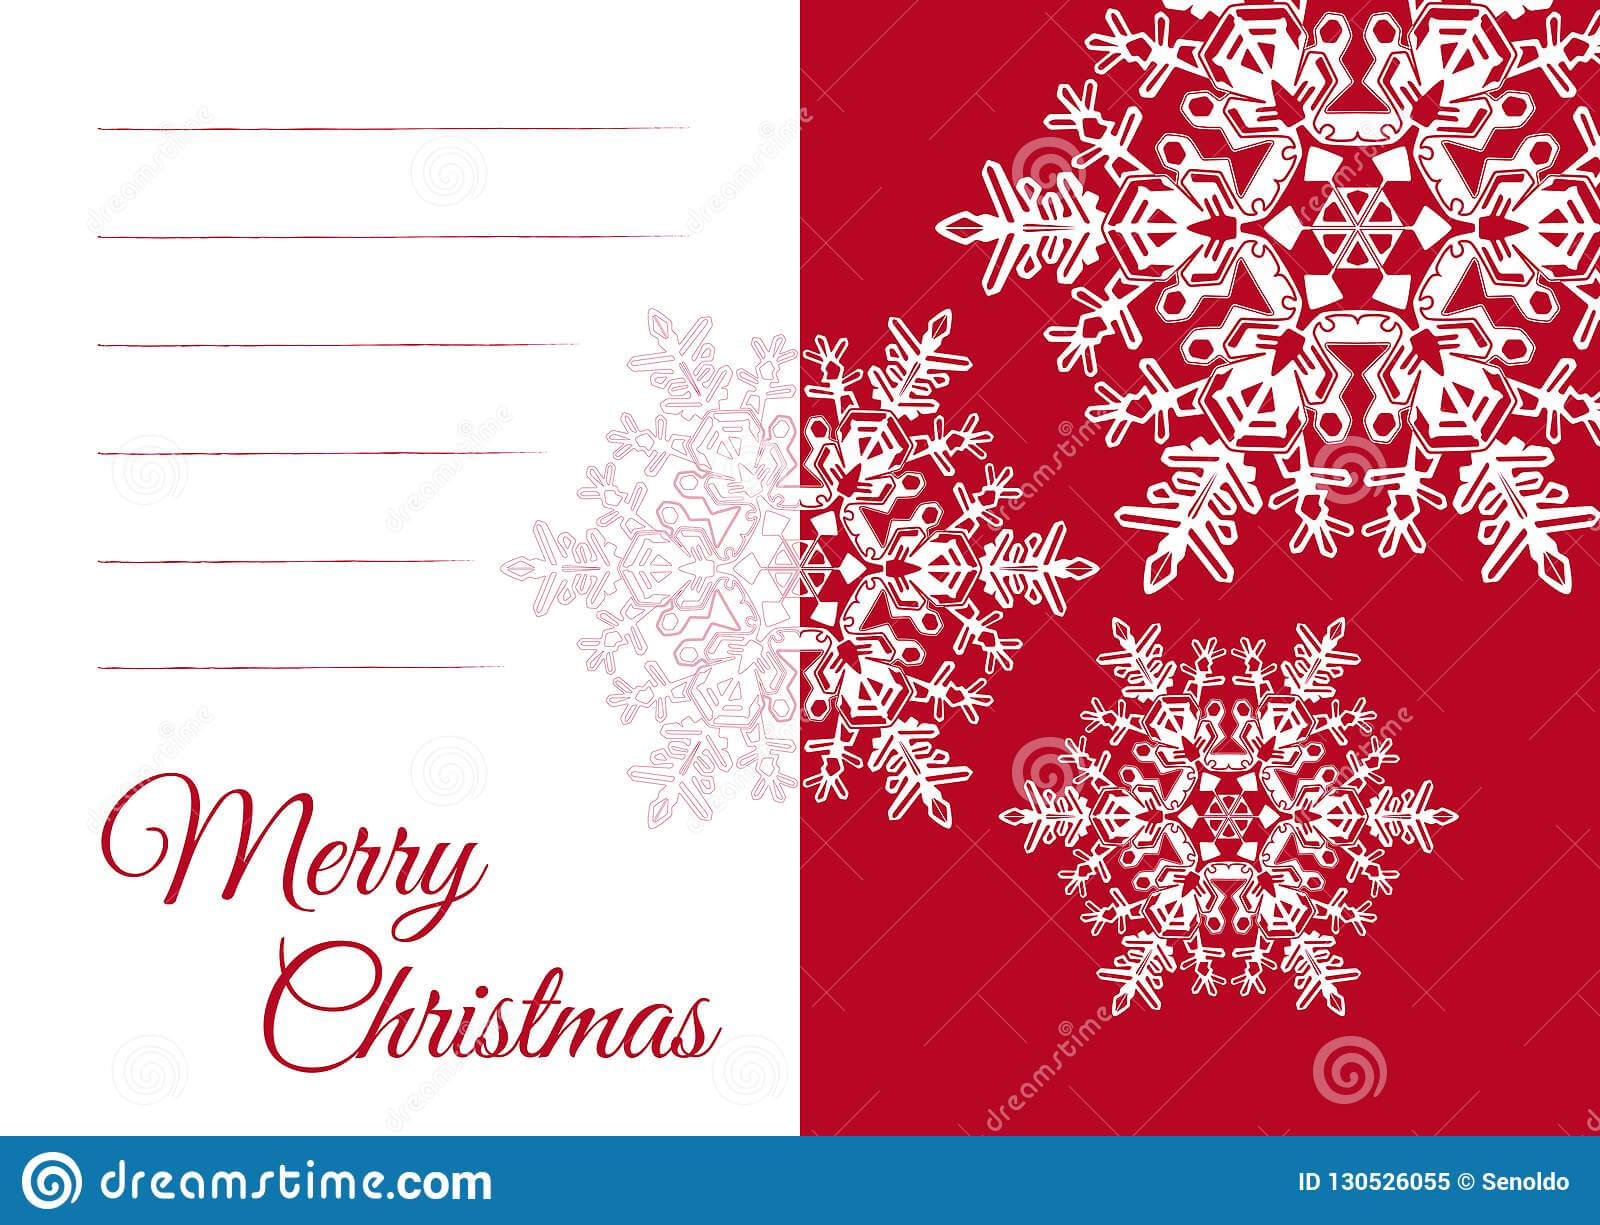 Christmas Greeting Card Template With Blank Text Field Stock Inside Free Printable Blank Greeting Card Templates